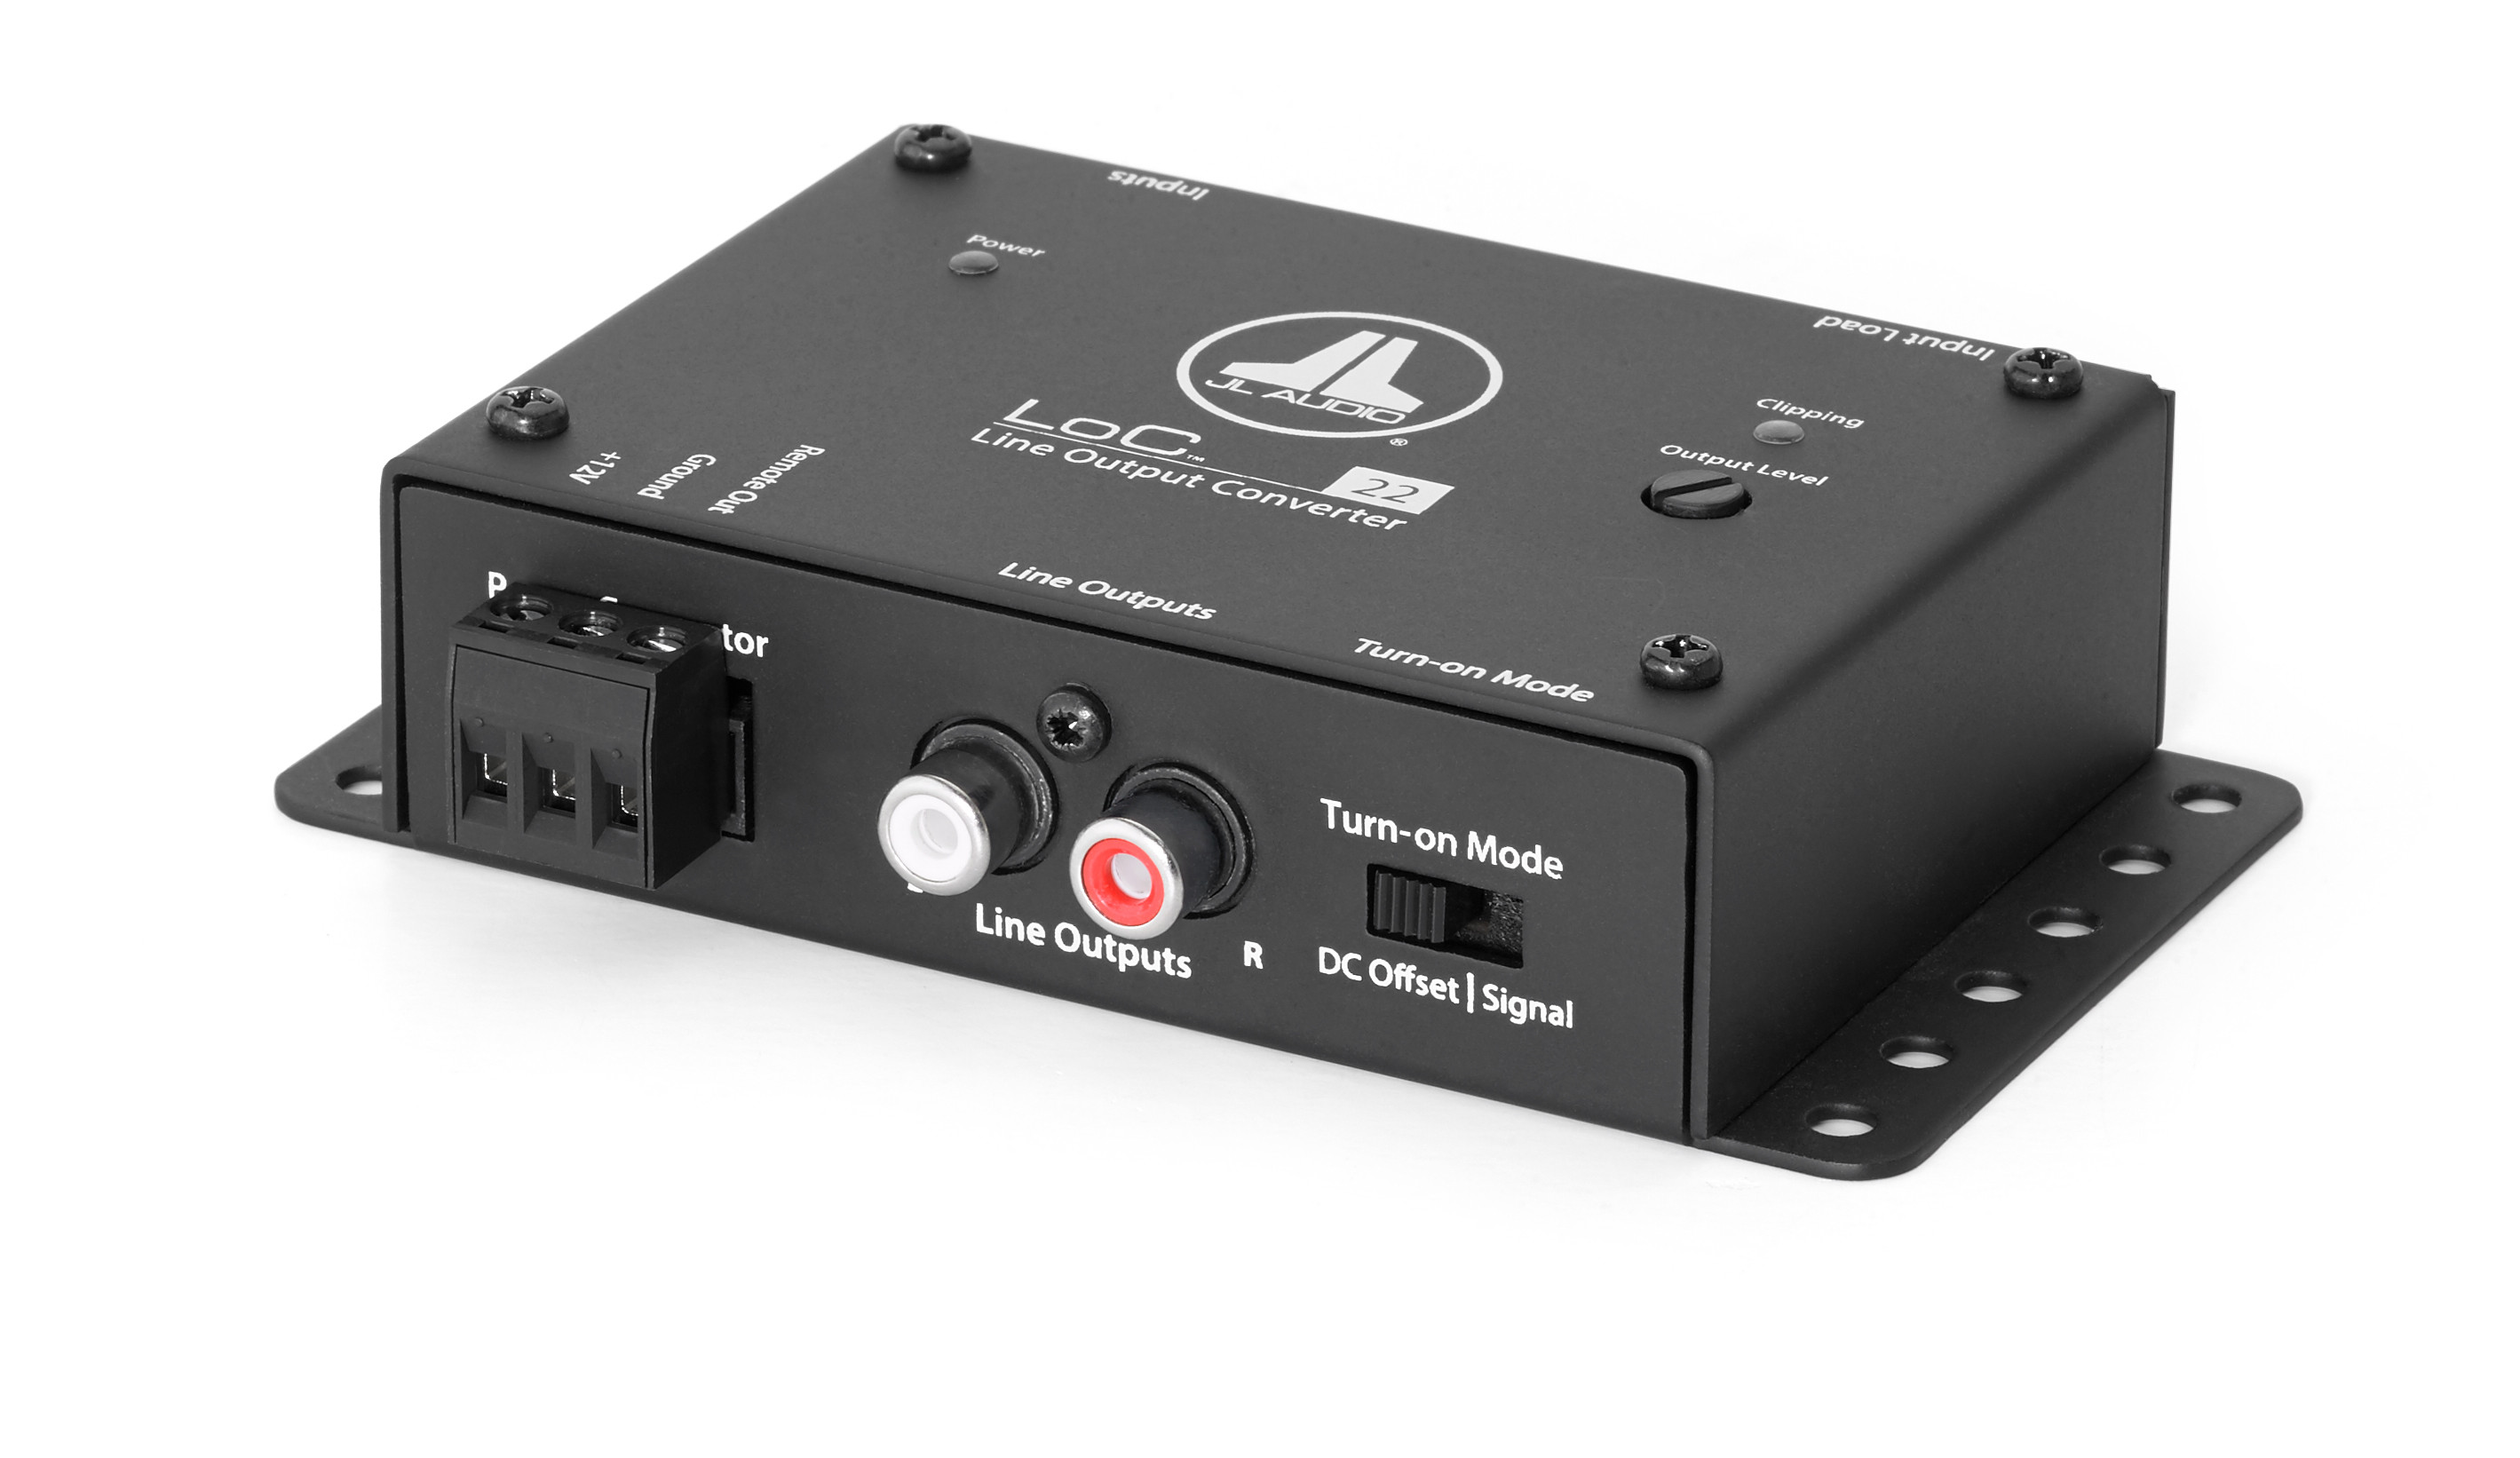 loc 22 jl audio help center search articles Coax Input what is it